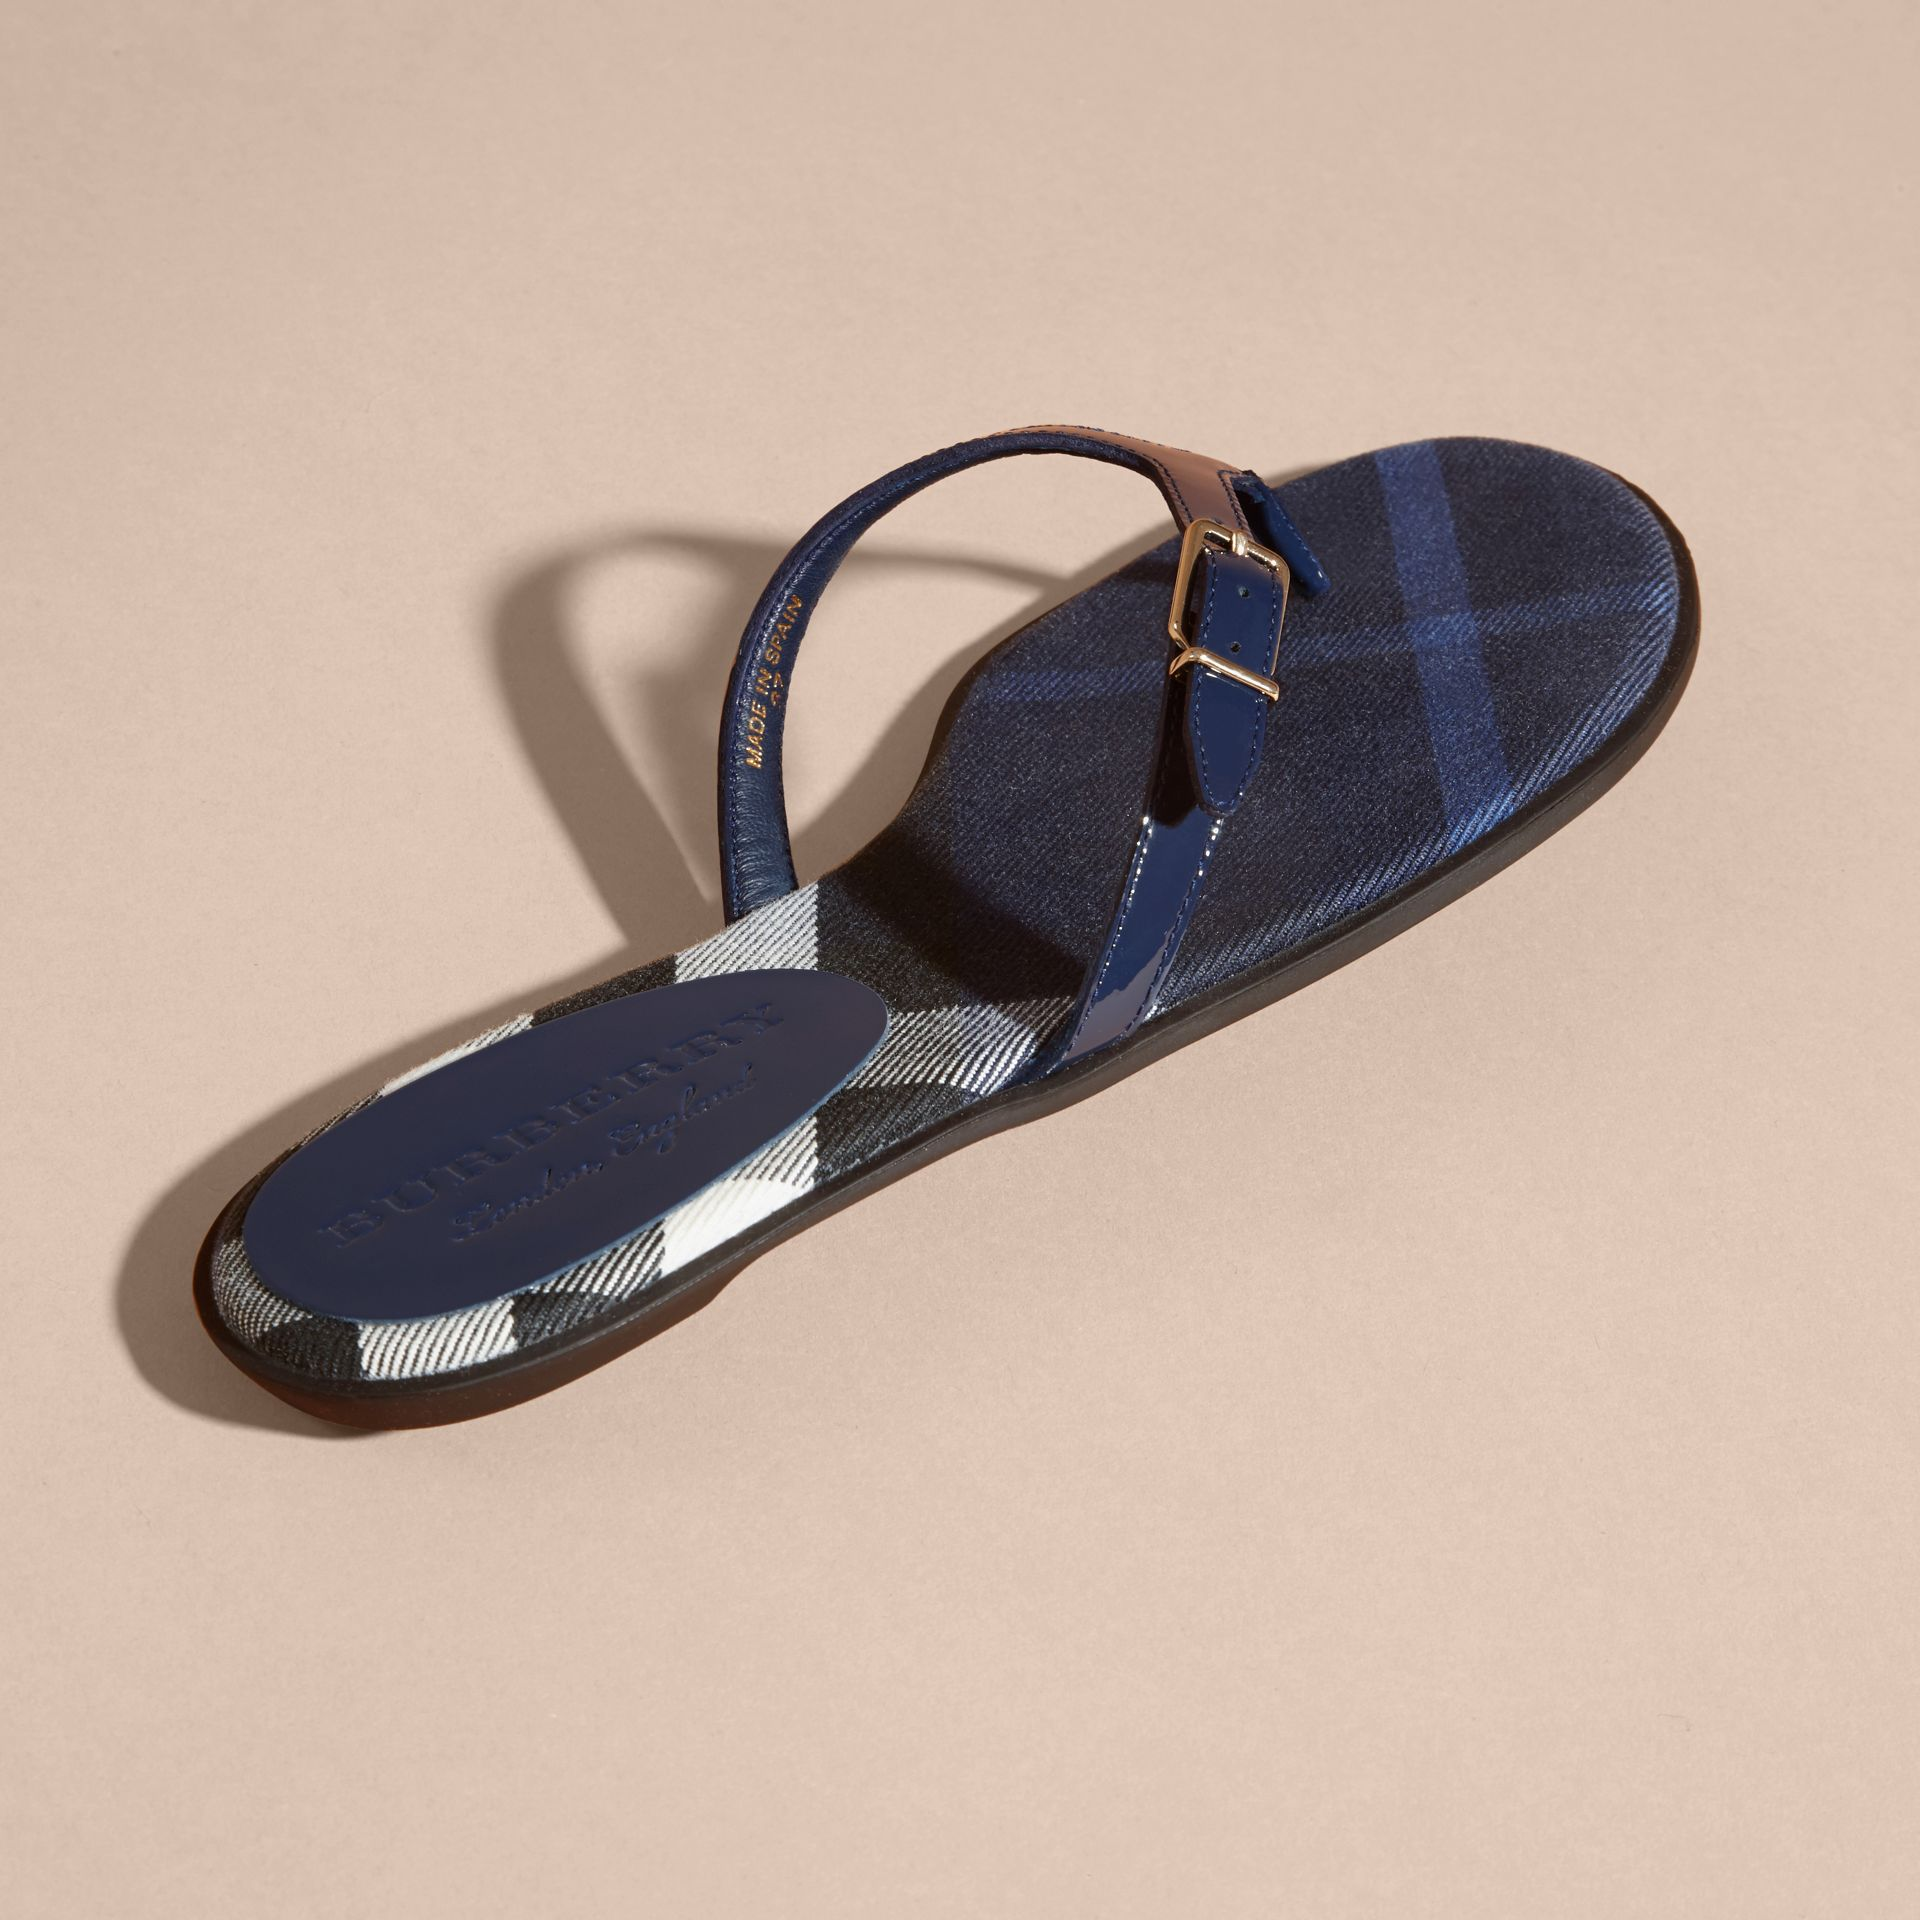 House Check and Patent Leather Sandals in Indigo Blue - Women | Burberry - gallery image 4